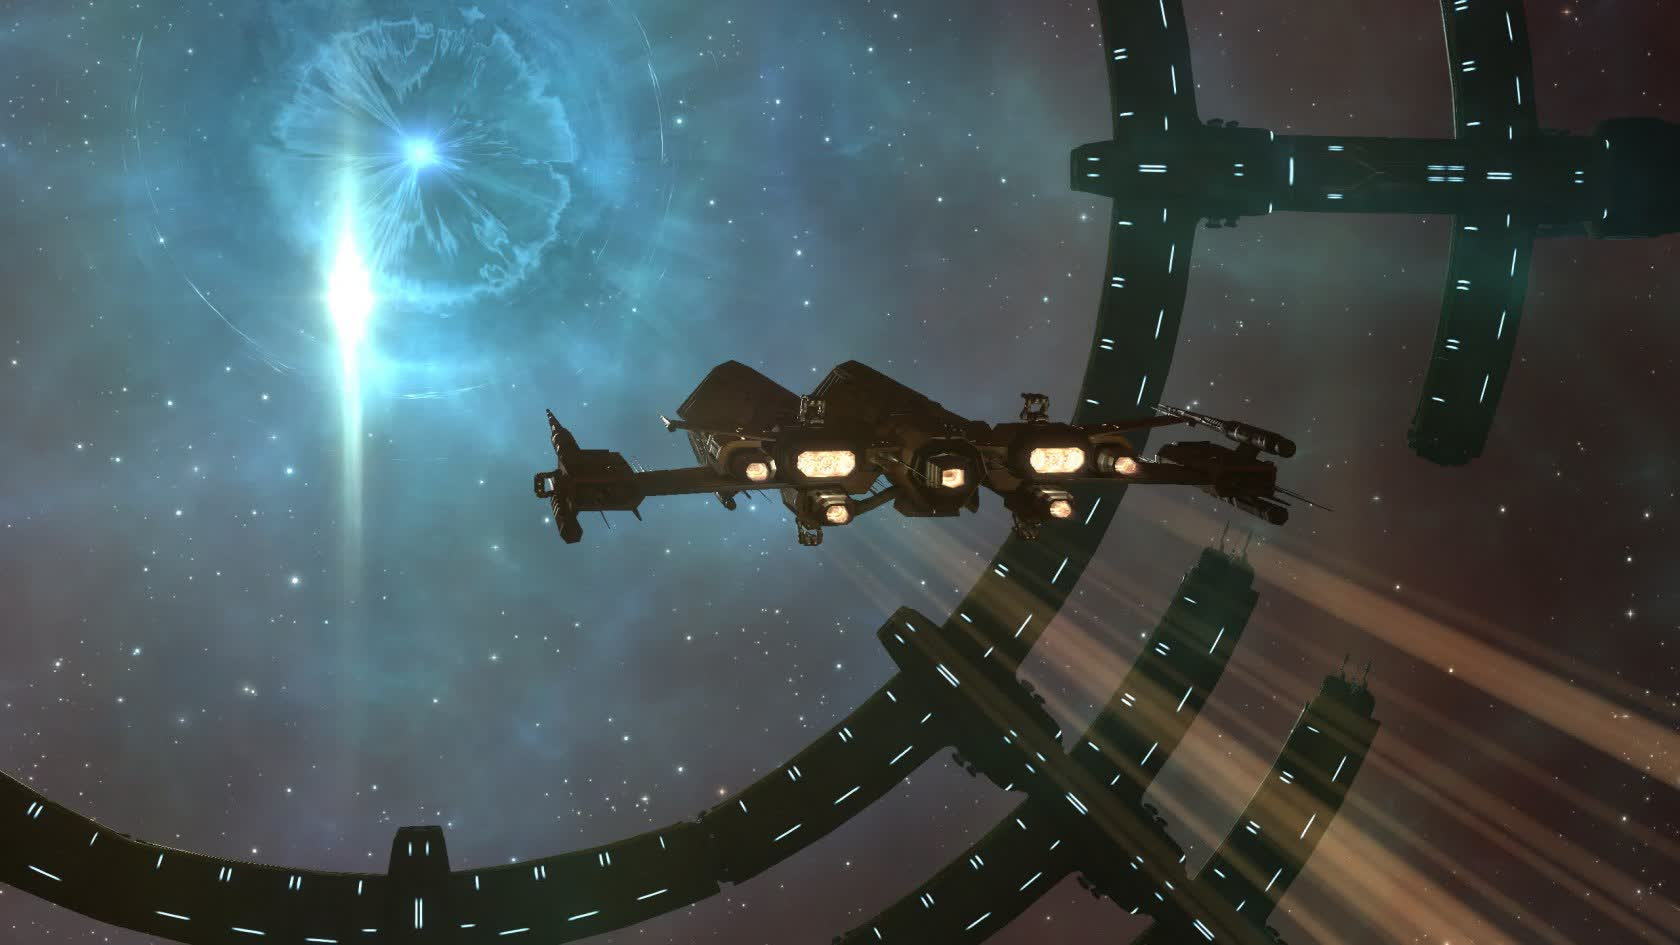 Over 171,000 EVE Online players have contributed to Covid-19 research